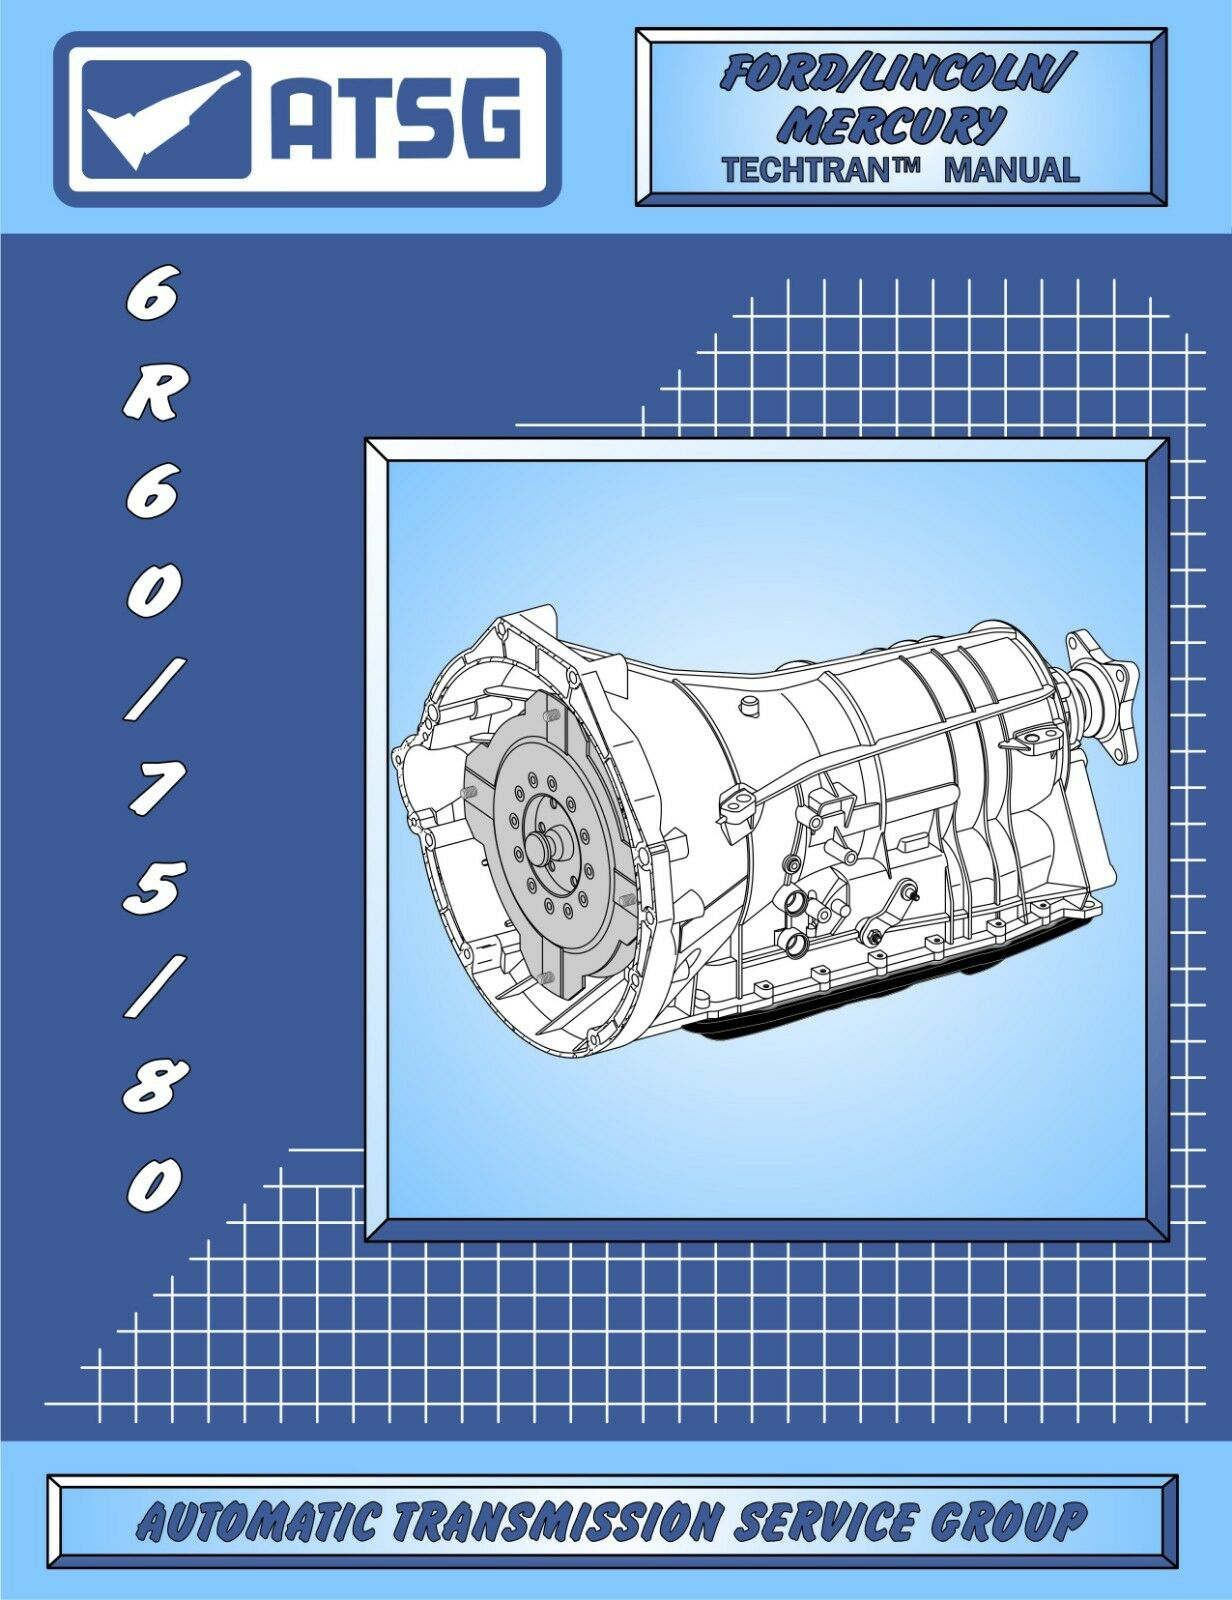 Ford 6r60 Atsg Rebuild Manual 6r75 6r80 Transmission Overhaul Automatic Diagram Norton Secured Powered By Verisign